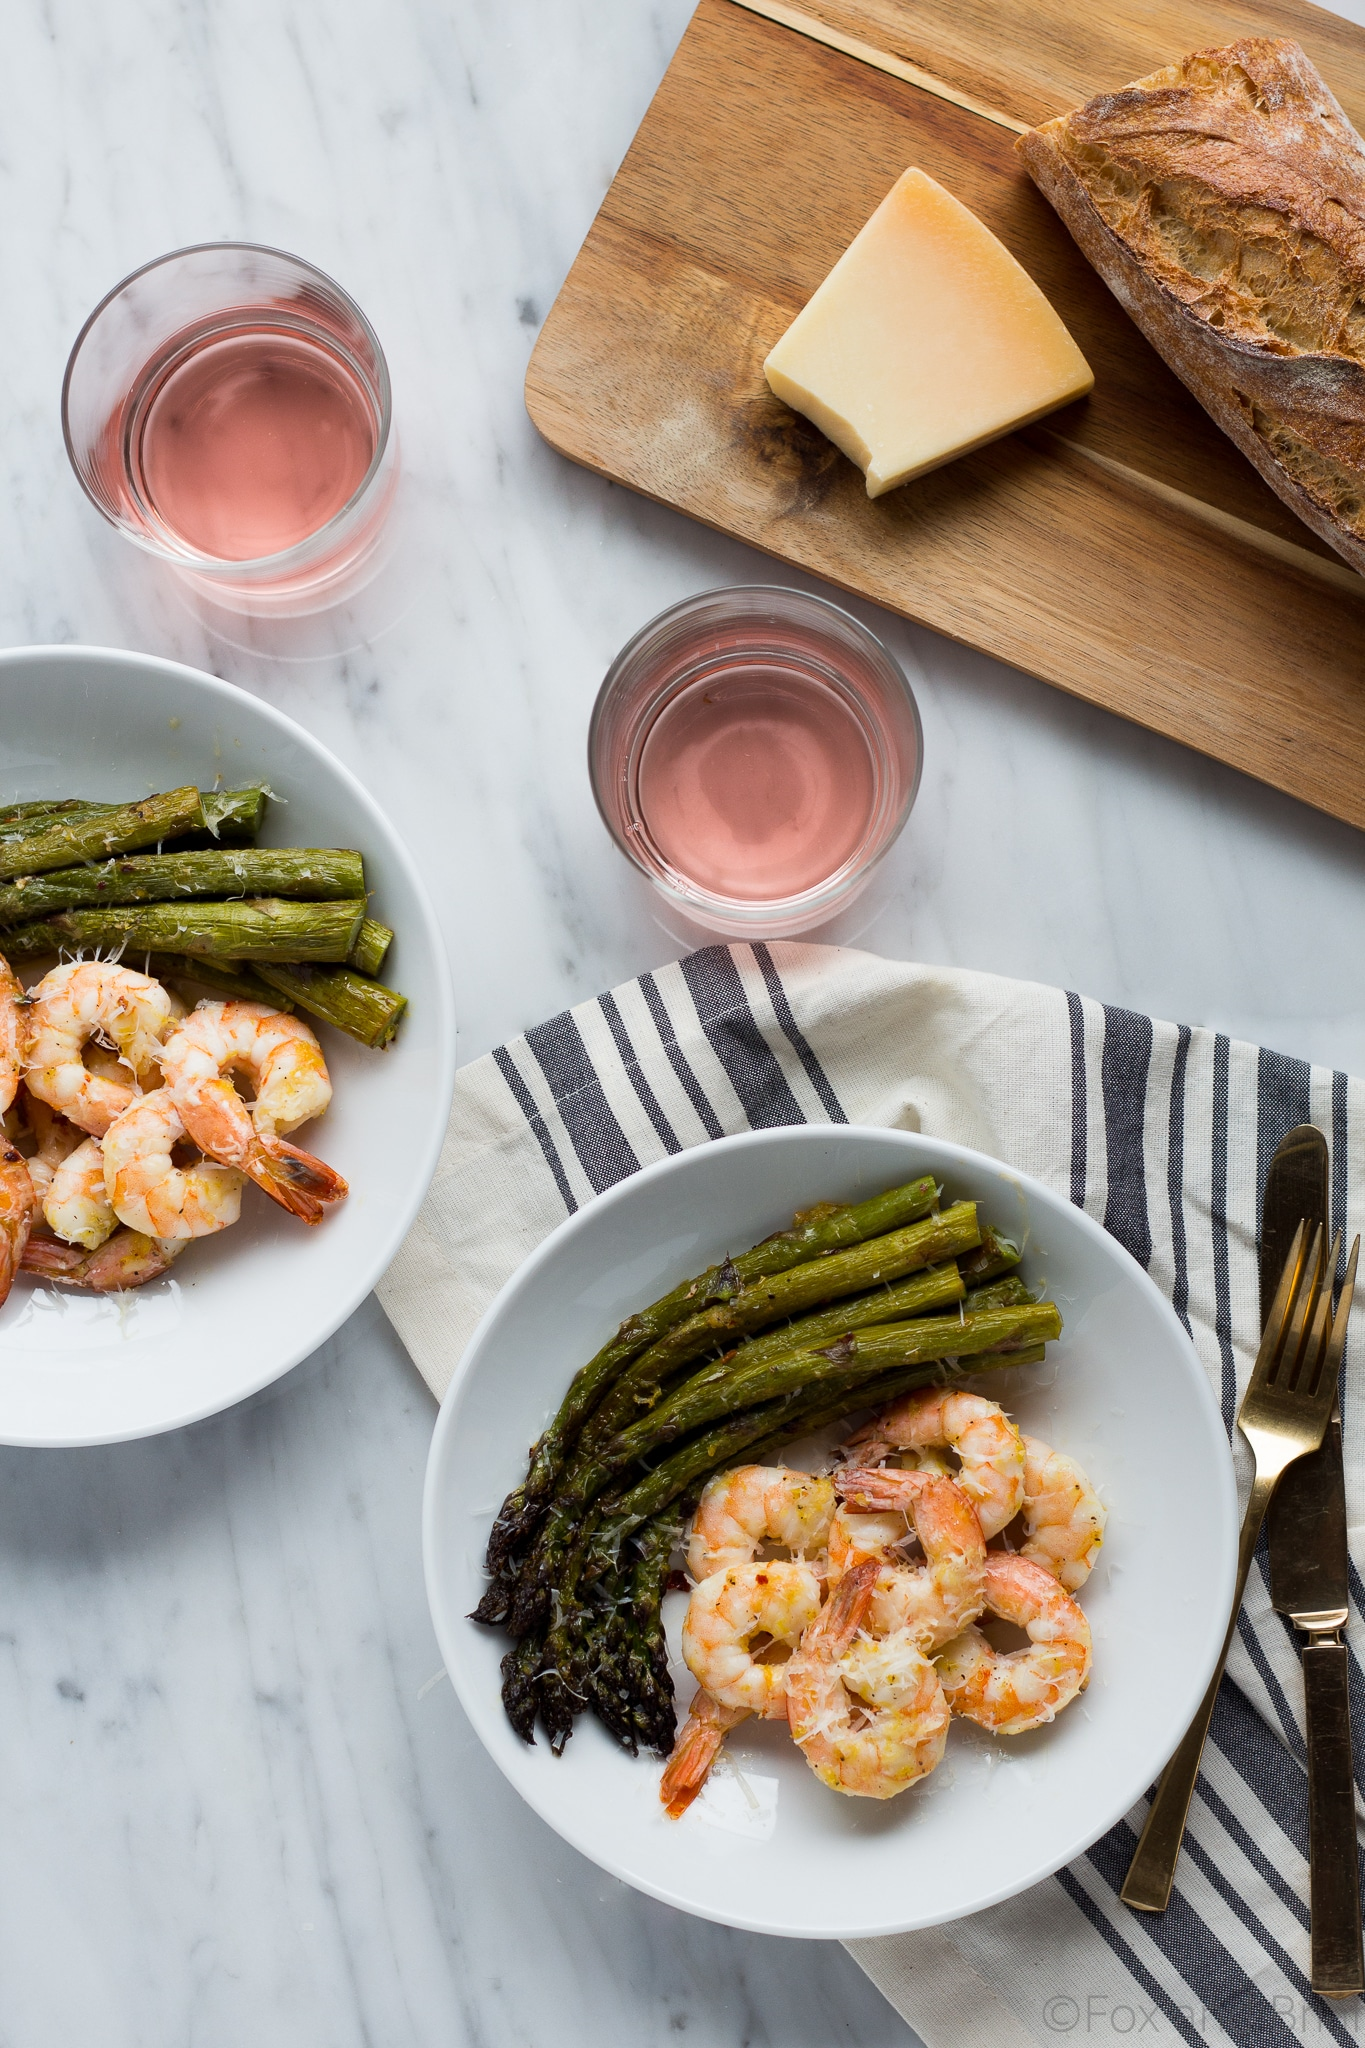 This Roasted Shrimp and Asparagus is a quick one pan sheet meal can be made in about 20 minutes and is tasty and healthy!